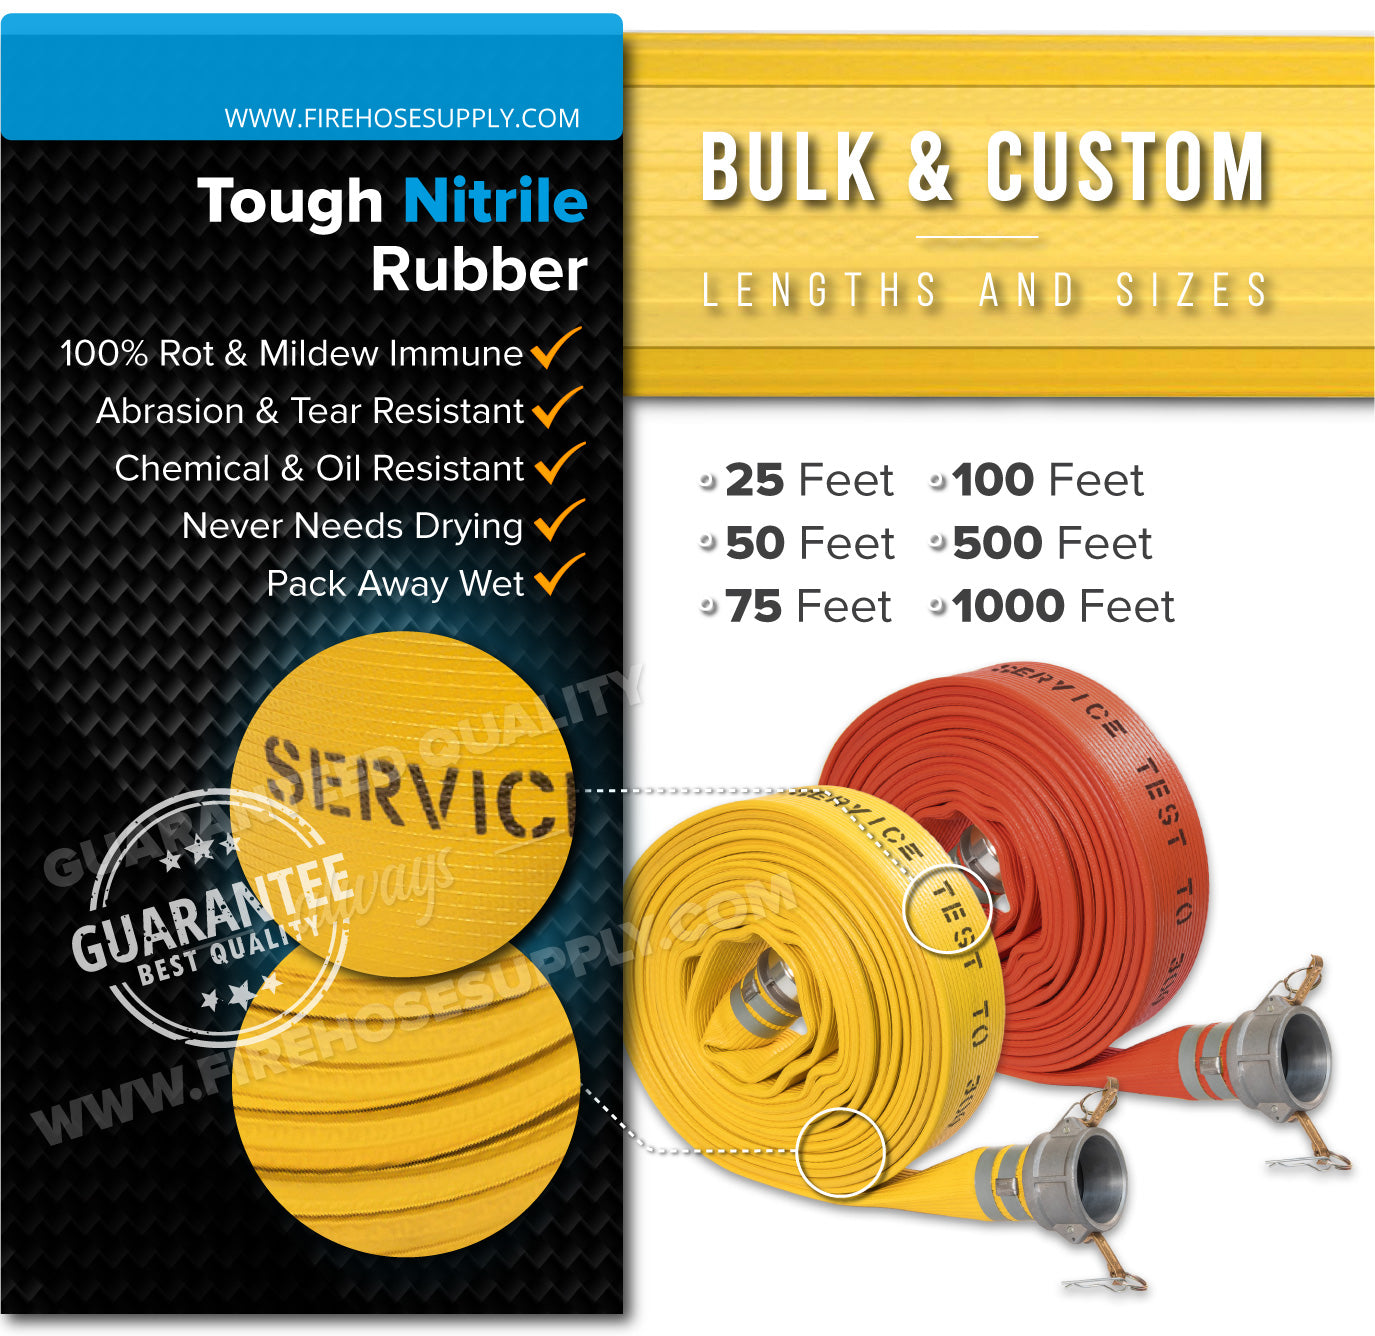 3 Inch Camlock Quick Connect Fire Hose Rubber Materials